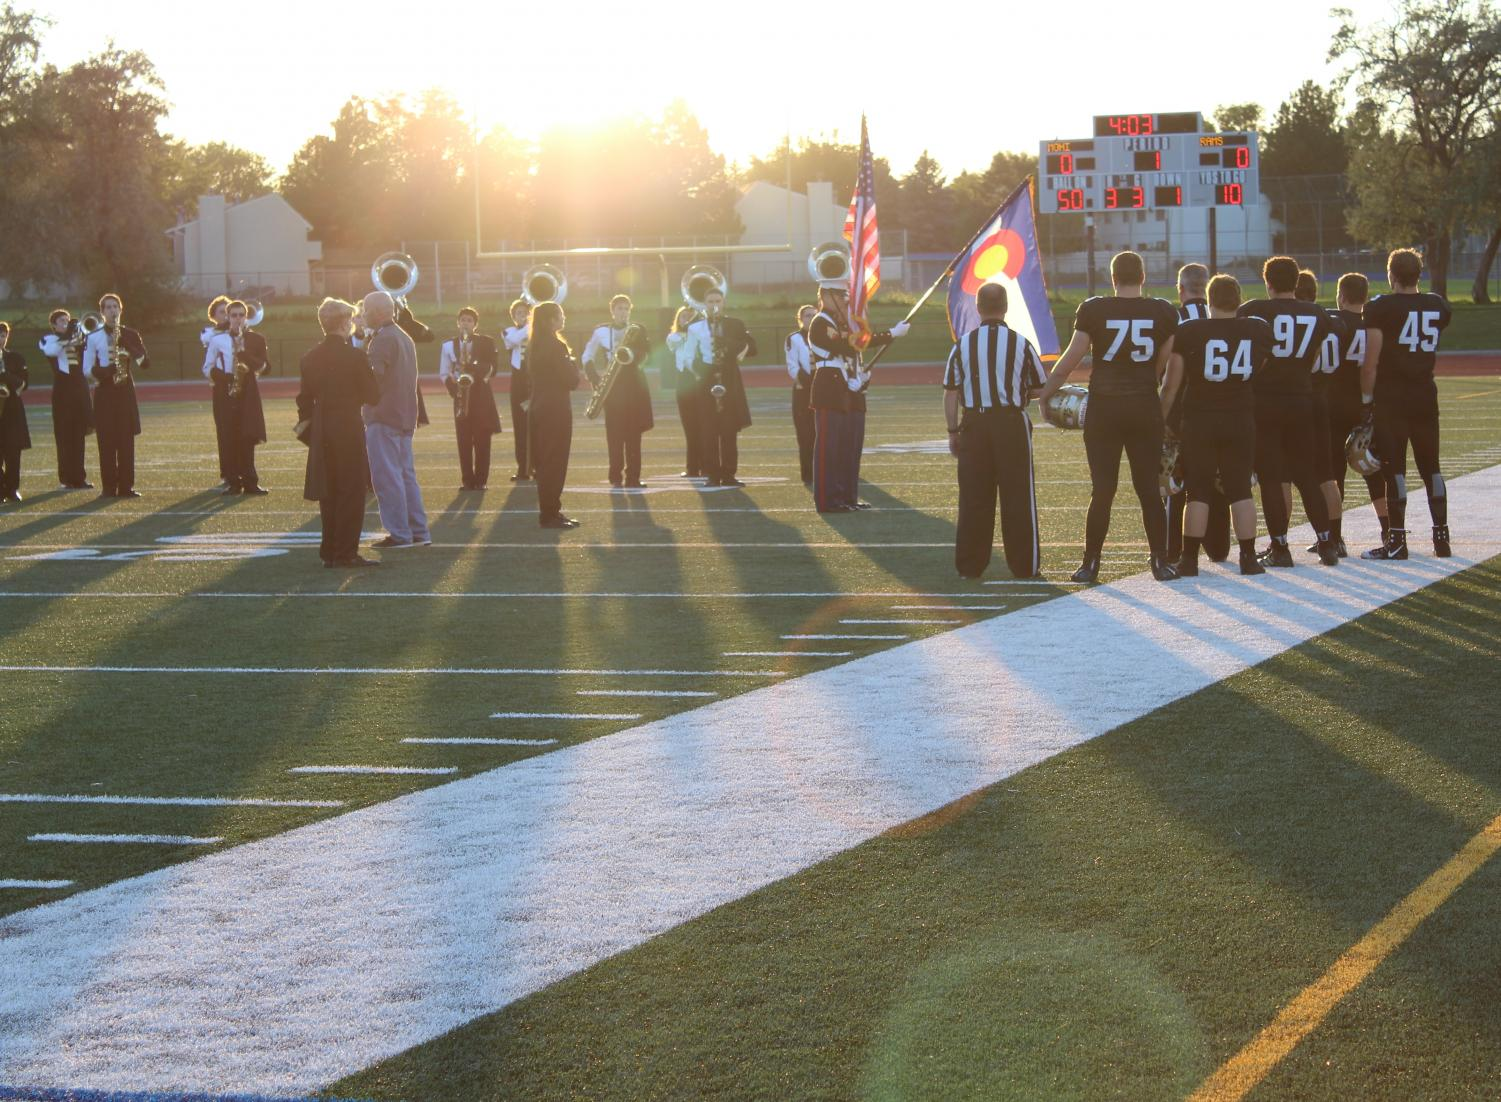 Football stands at attention while the marching band performs the National Anthem at the Aug 29 game against Longmont.